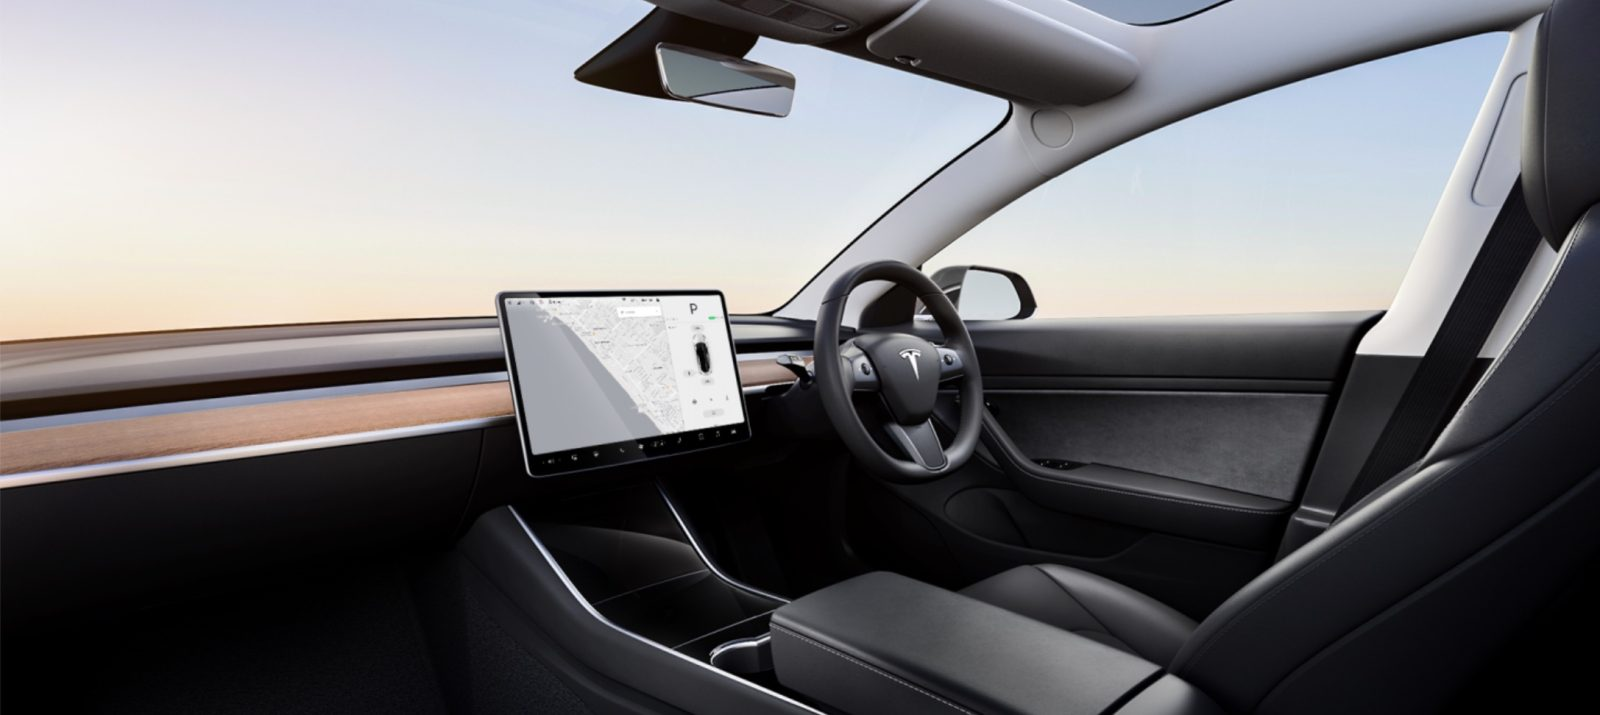 Tesla Model 3 Takes Over The Uk With A Record Quarter Electrek